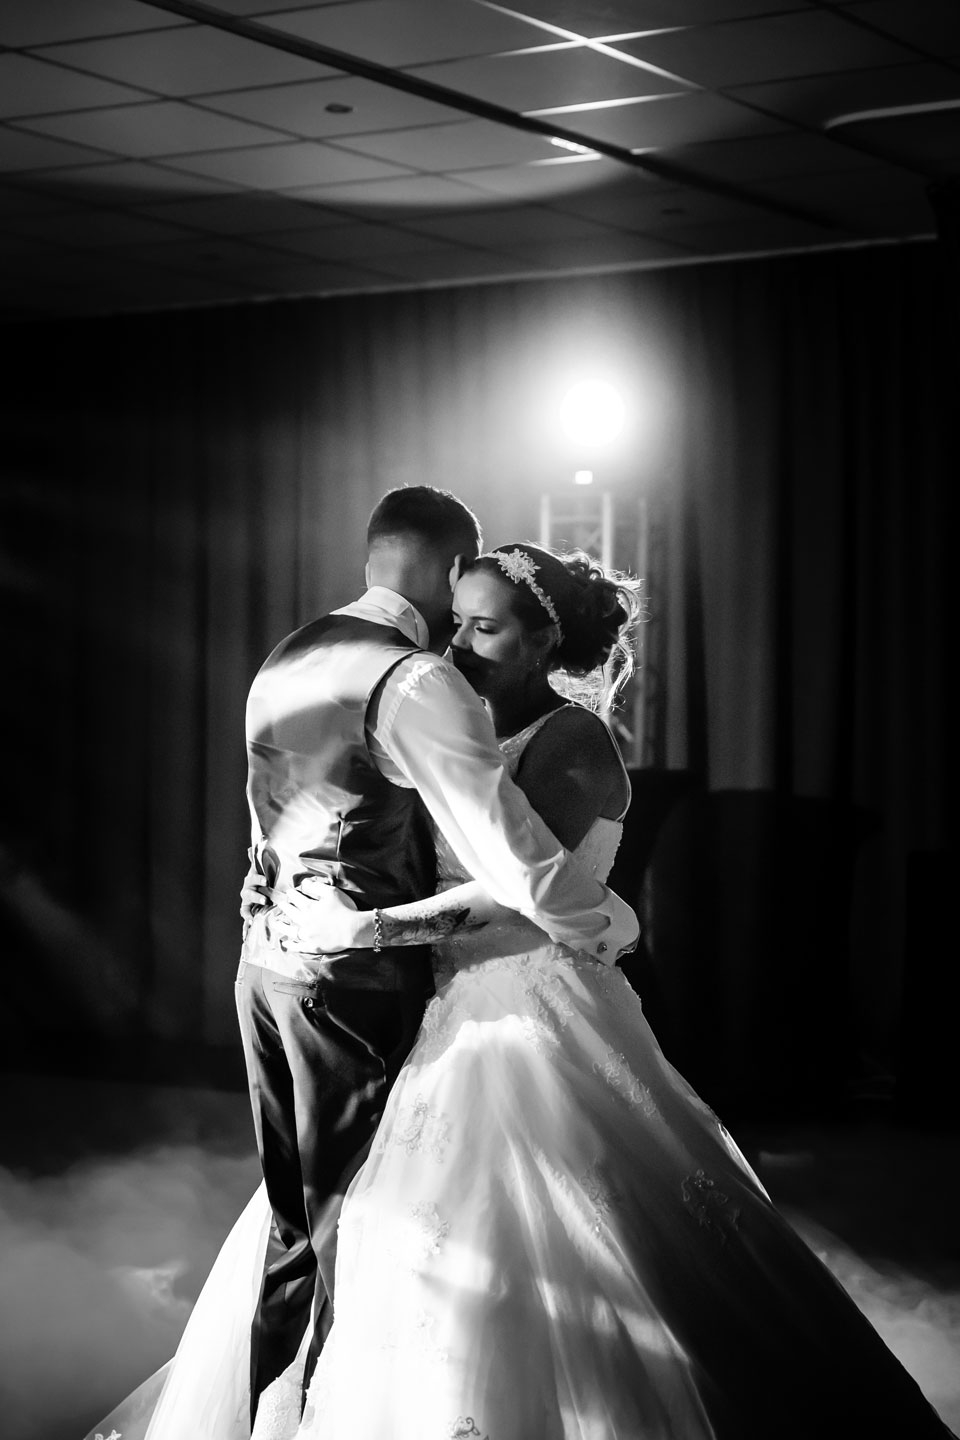 20200912-mariage-ophelie-alexandre-084